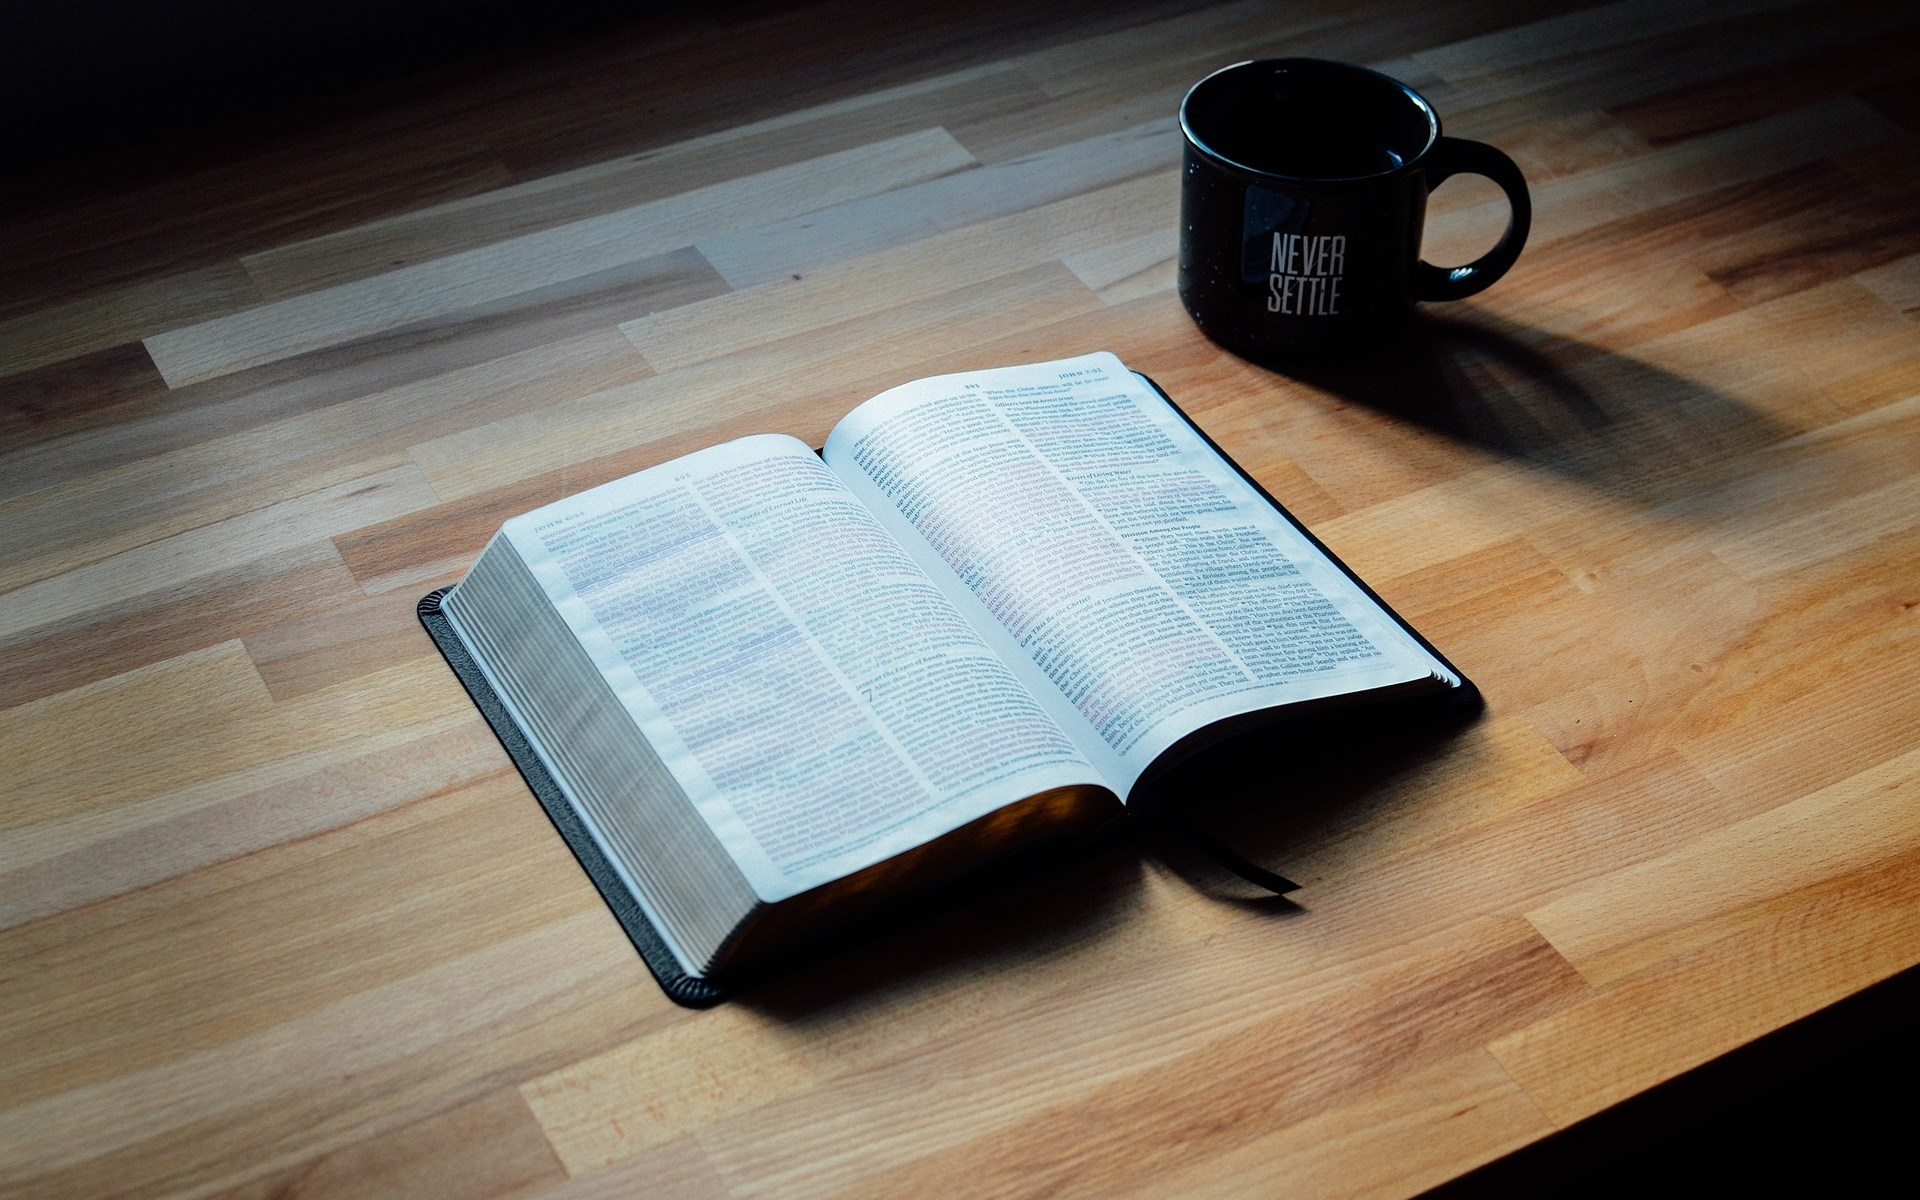 Open book on brown wooden table next to coffee mug